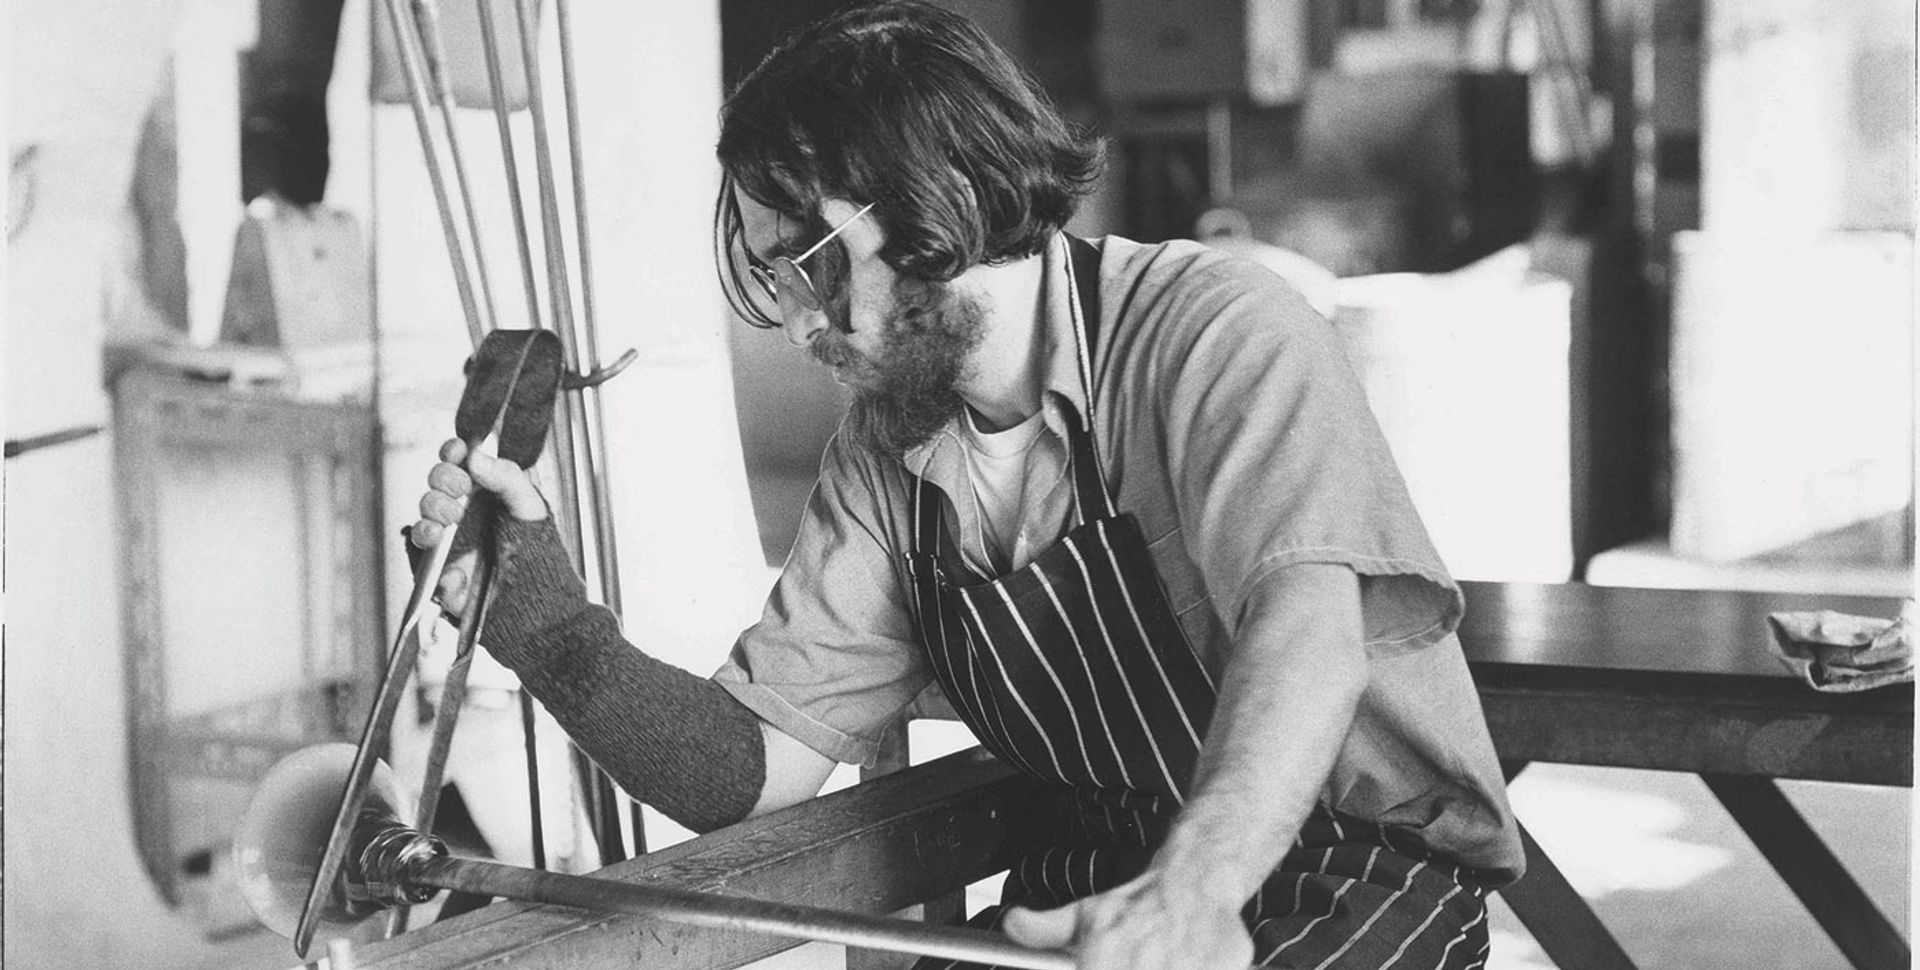 Sam Herman at the Royal College of Art, in London, where he was head of the Glass department in 1966-74 Courtesy of Frestonian Gallery